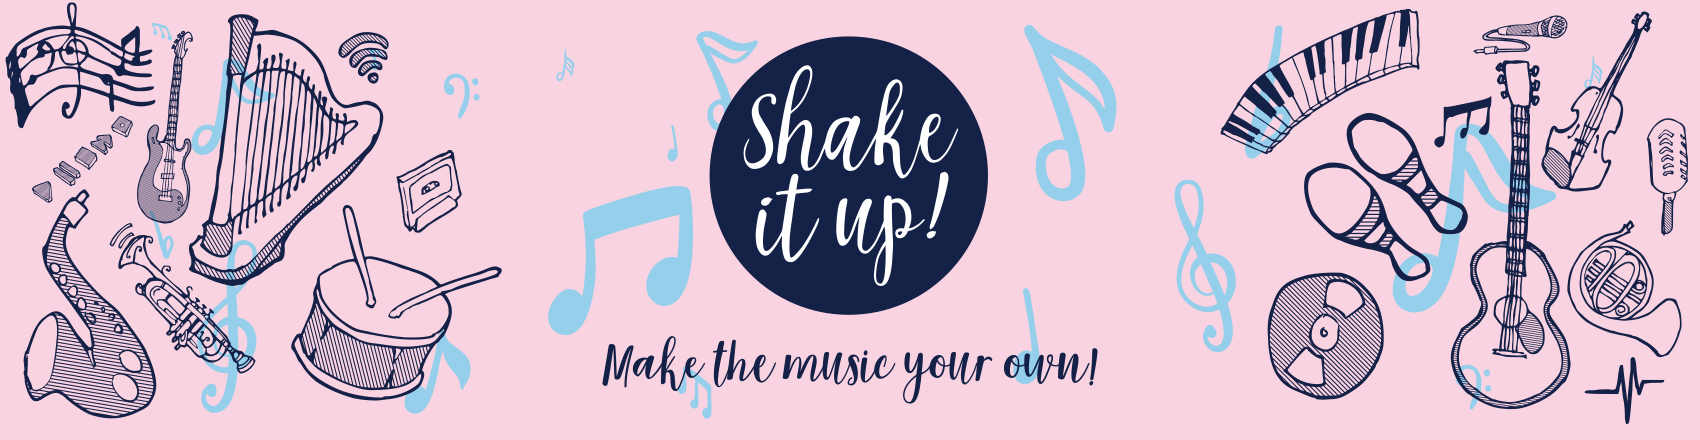 Shake It Up competition banner: make the music your own!